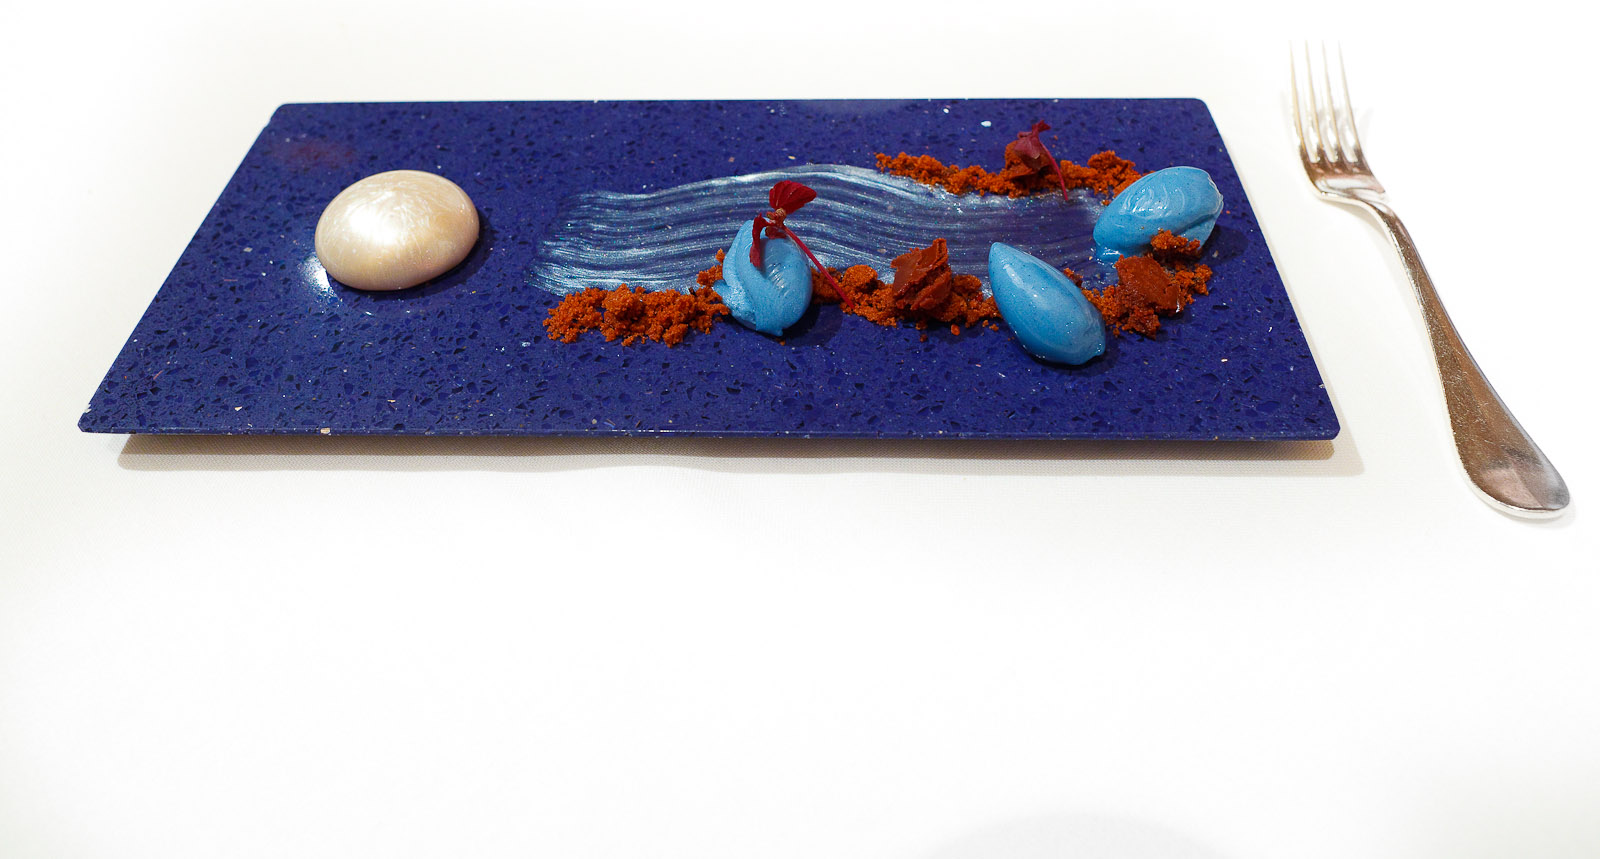 11th Course: Night and Day - Moon, coconut, rum, blue and black ganache